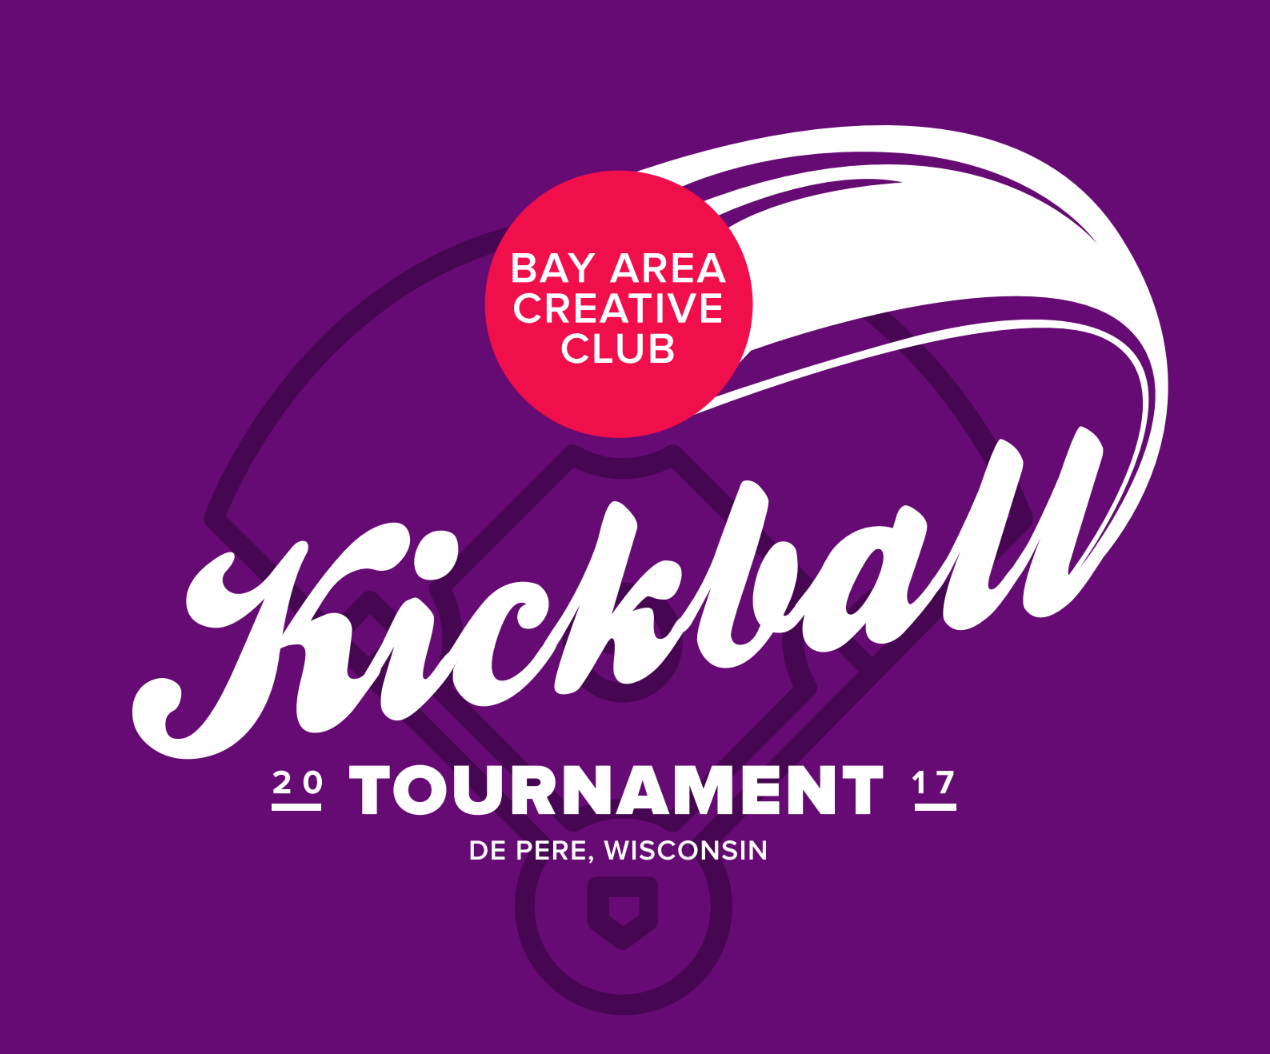 kickball tournament promotional graphic